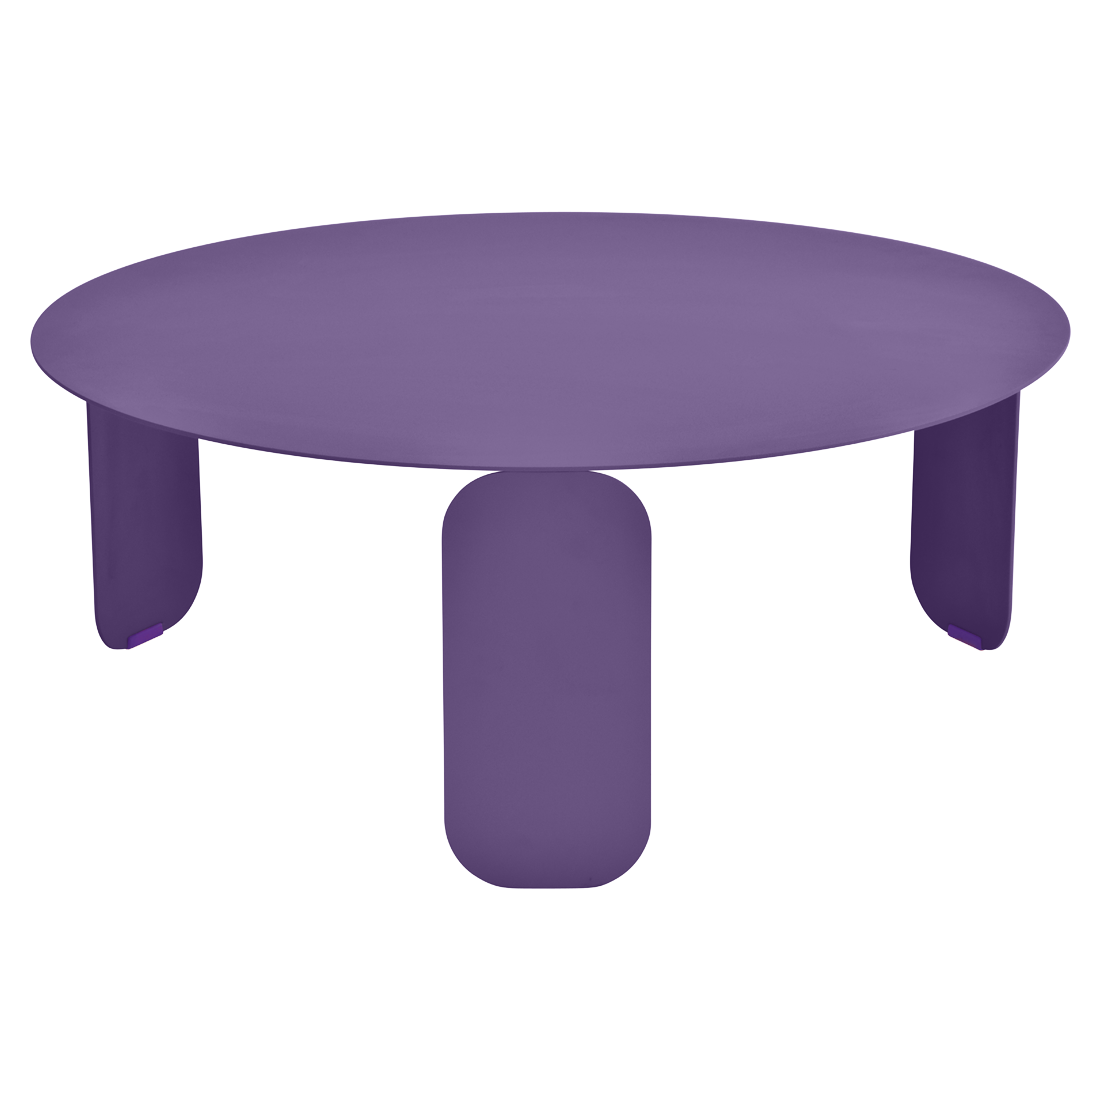 table basse metal, table basse design, table basse fermob, table basse violet